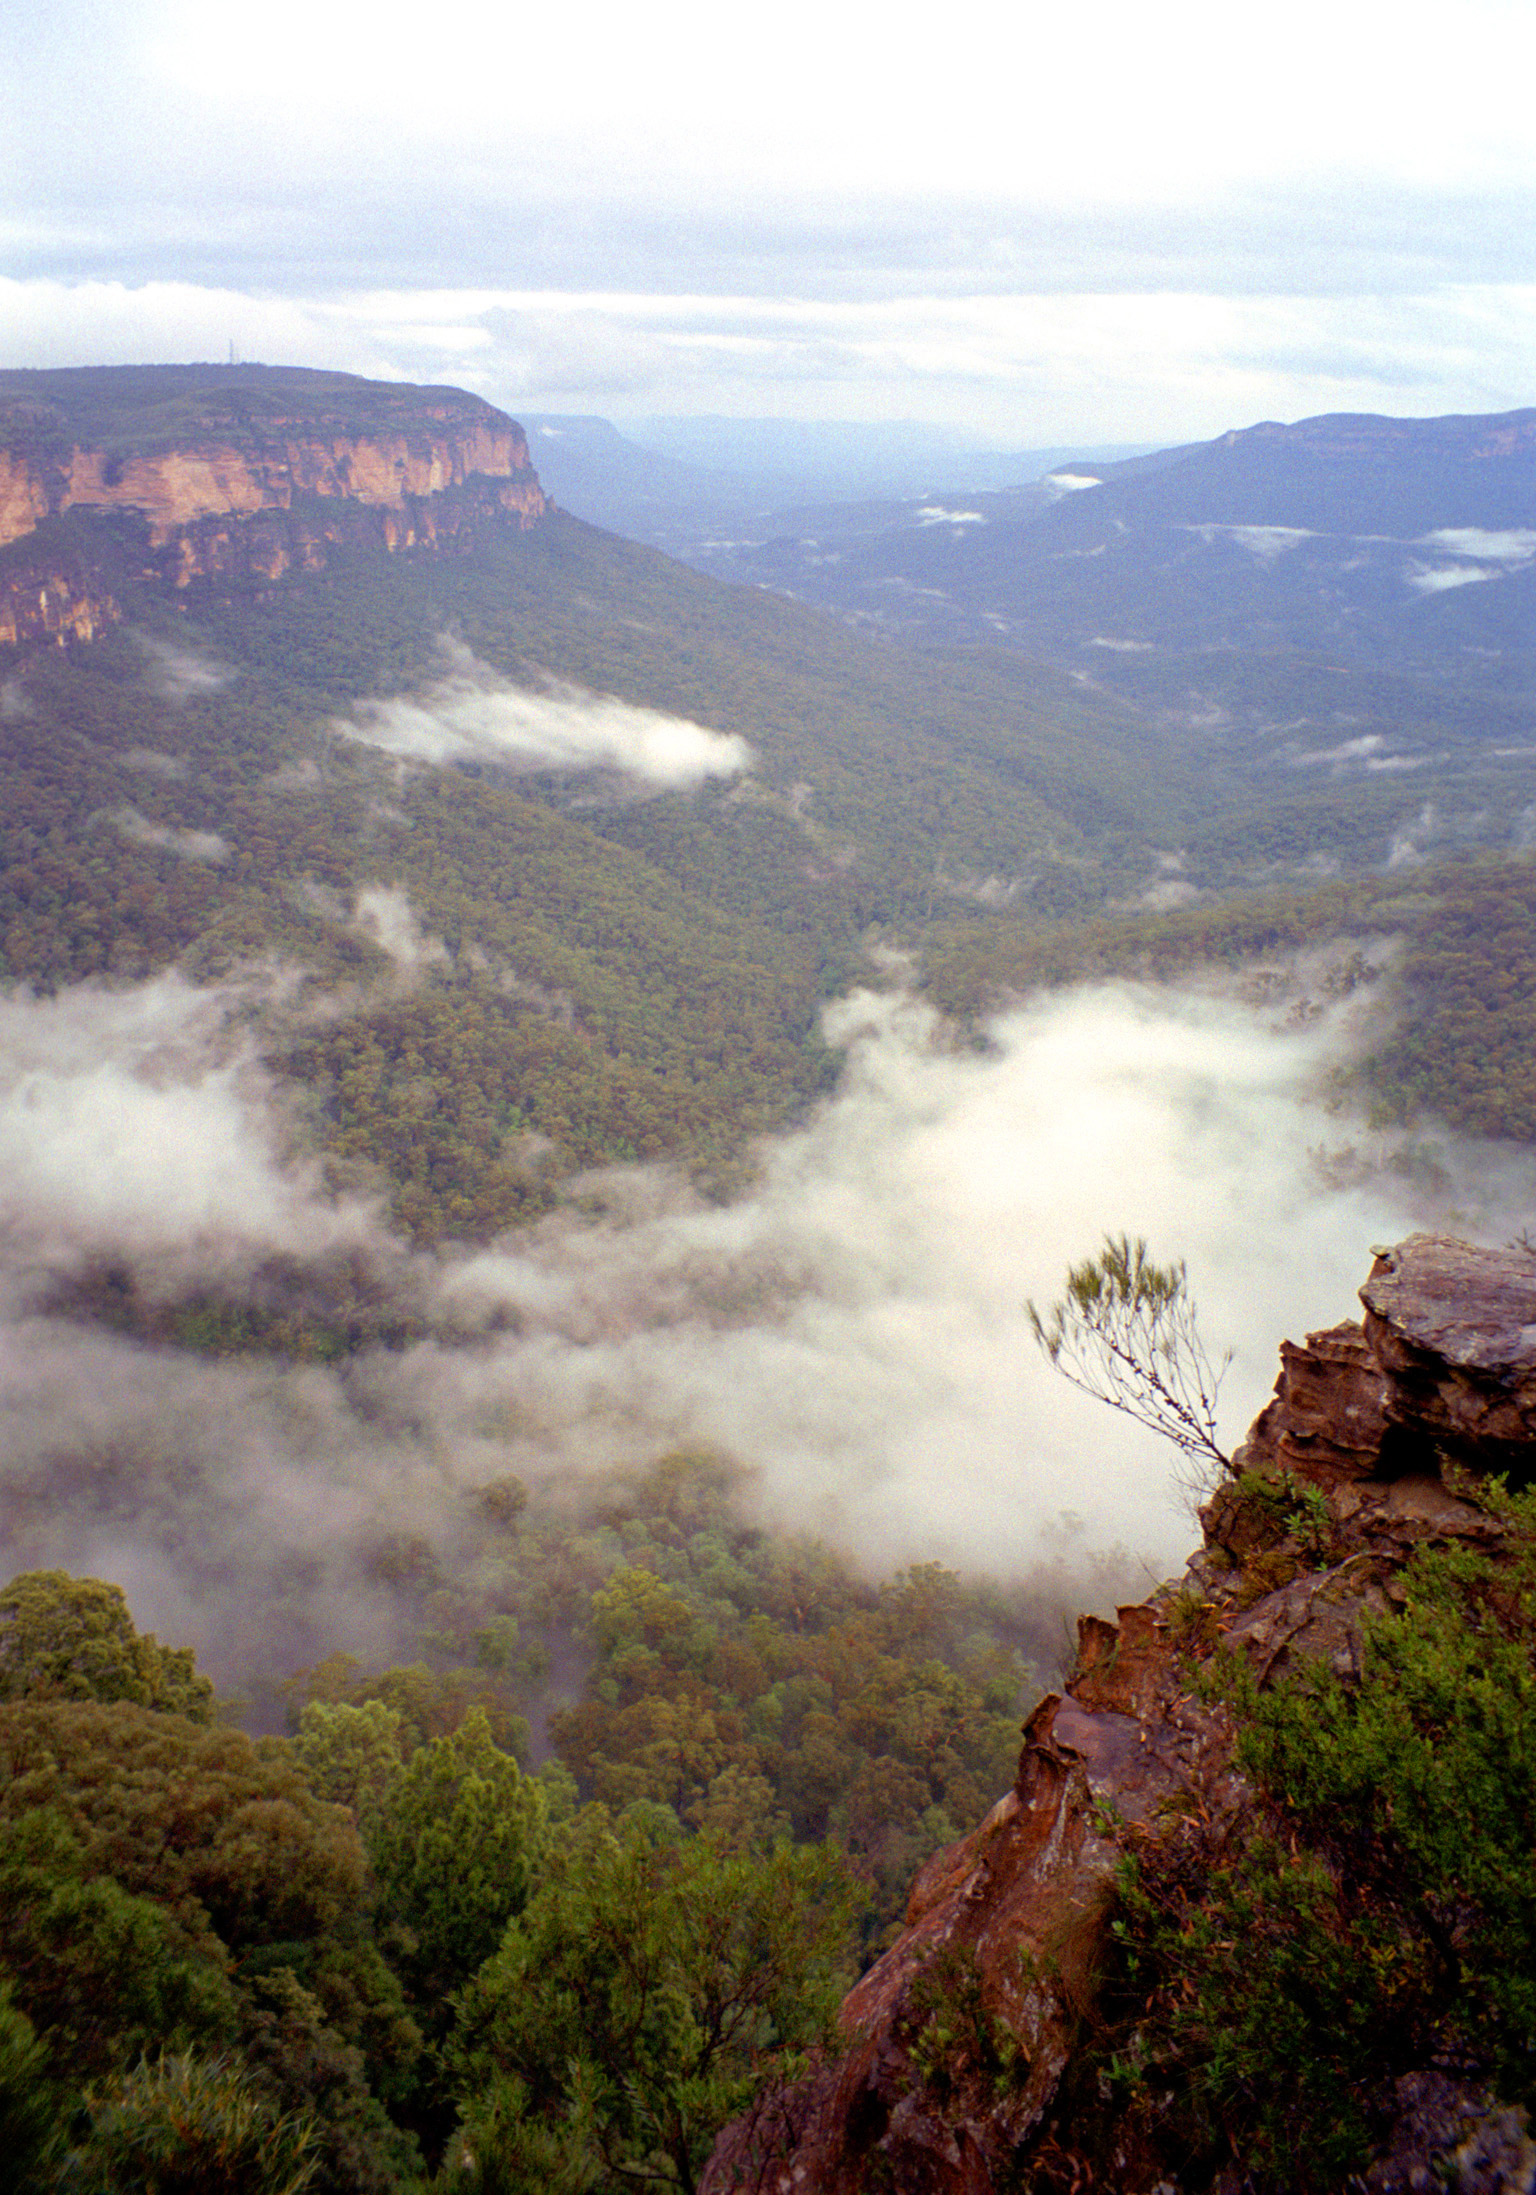 Fogs hangng over a valley in the Blue Mountains. Captured in Aerial View.